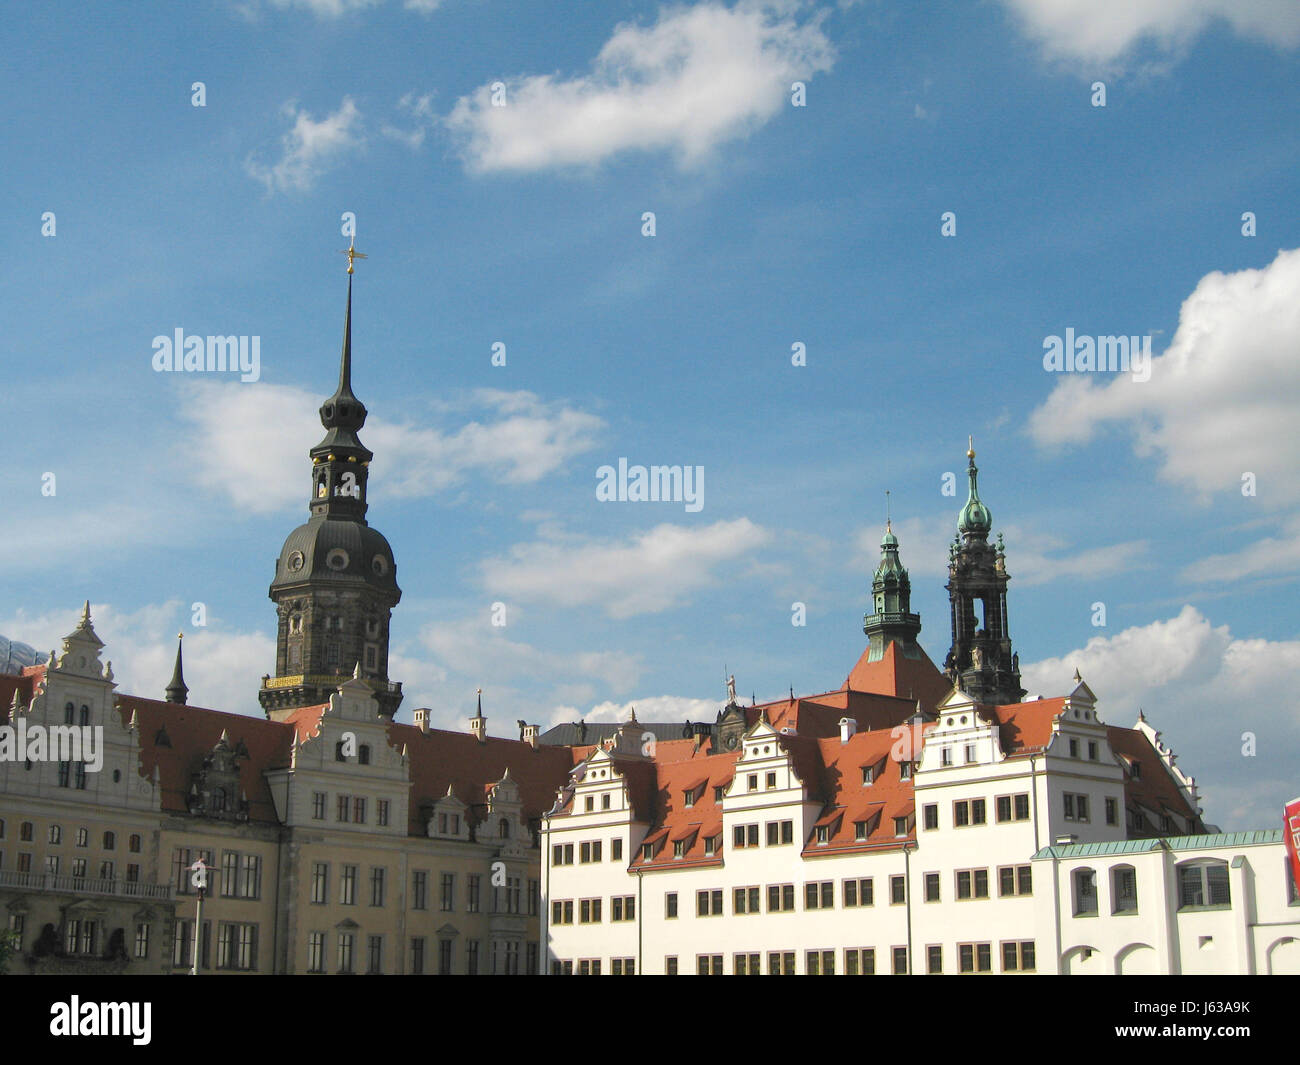 Reconstruction era stock photos reconstruction era stock images sights sightseeing saxony dresden reconstruction baroque sights sightseeing stock image sciox Choice Image